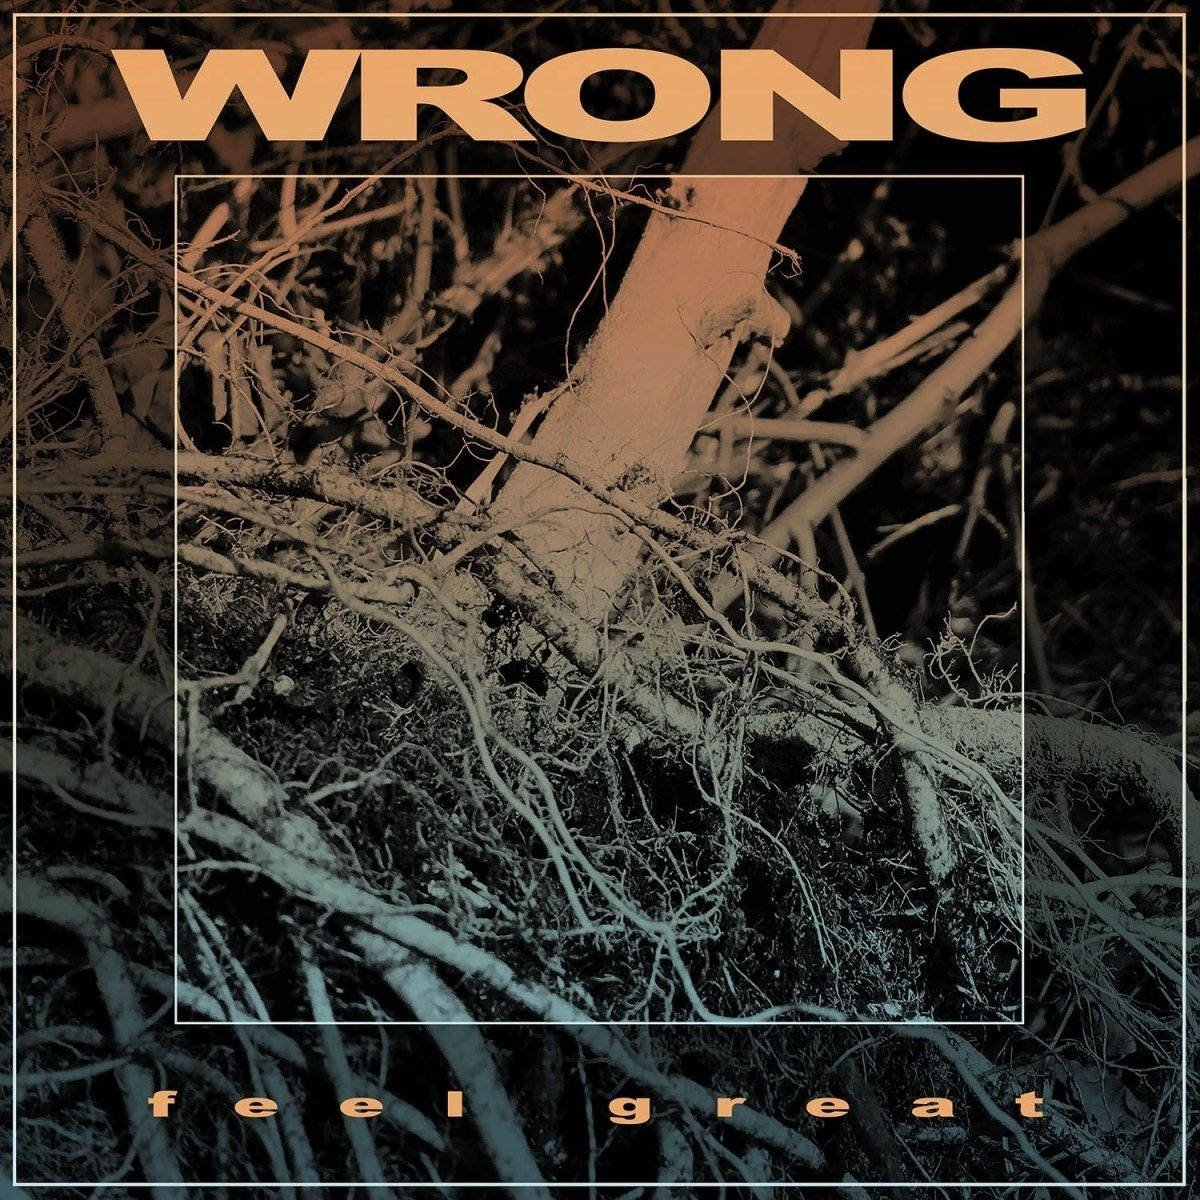 Vinilo : Wrong - Feel Great (LP Vinyl)